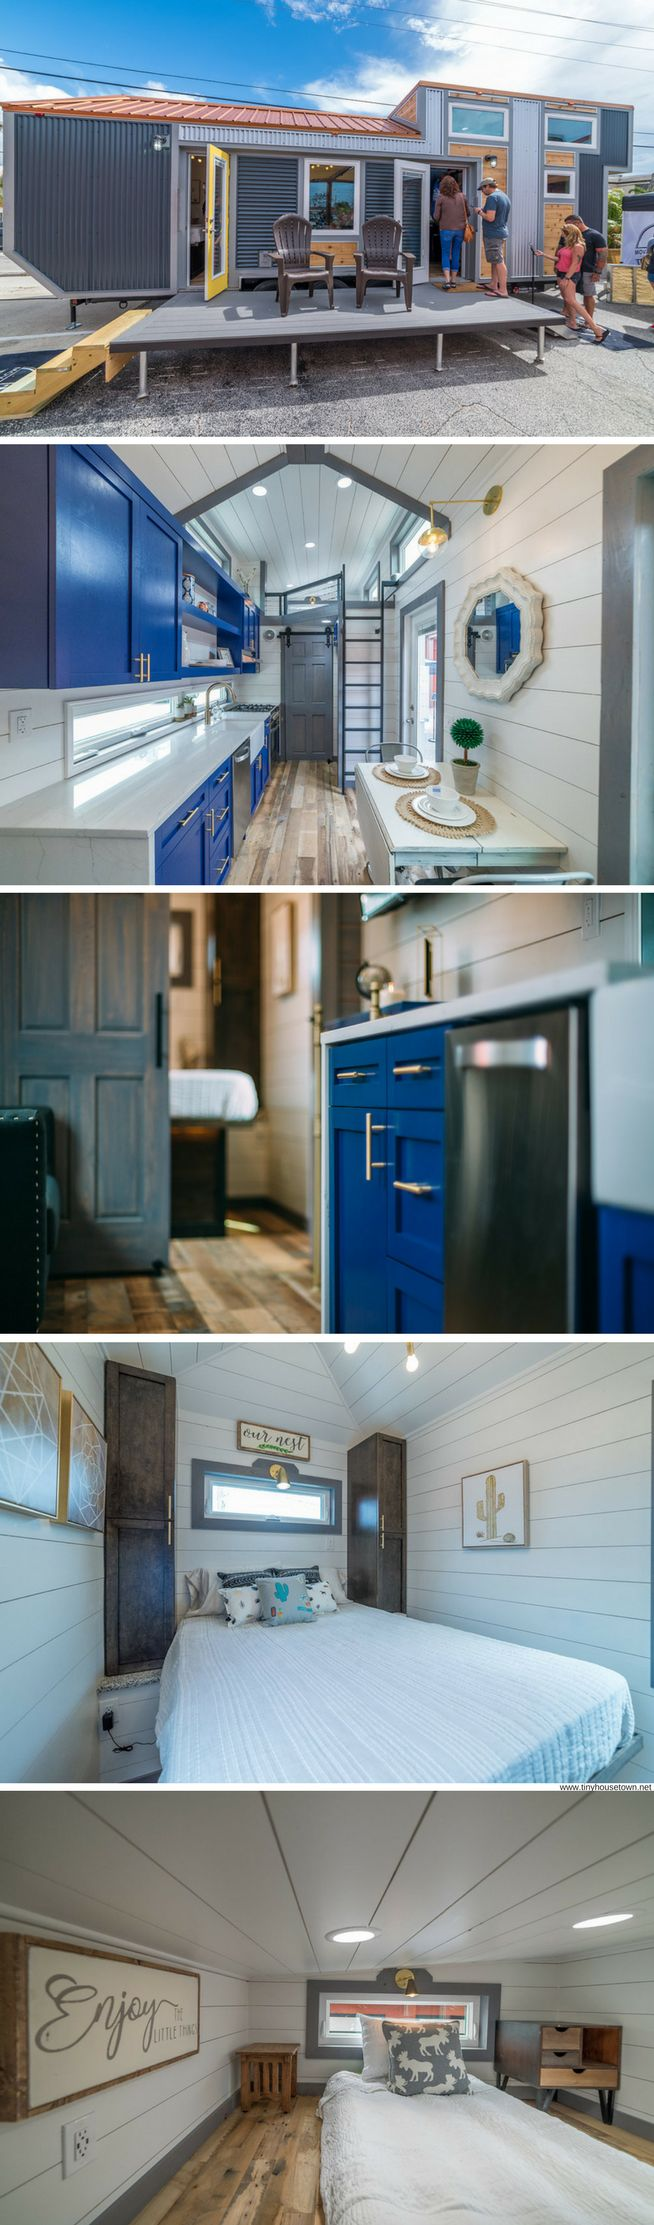 Best 25 tiny house rentals ideas on pinterest rental for Small house builders near me